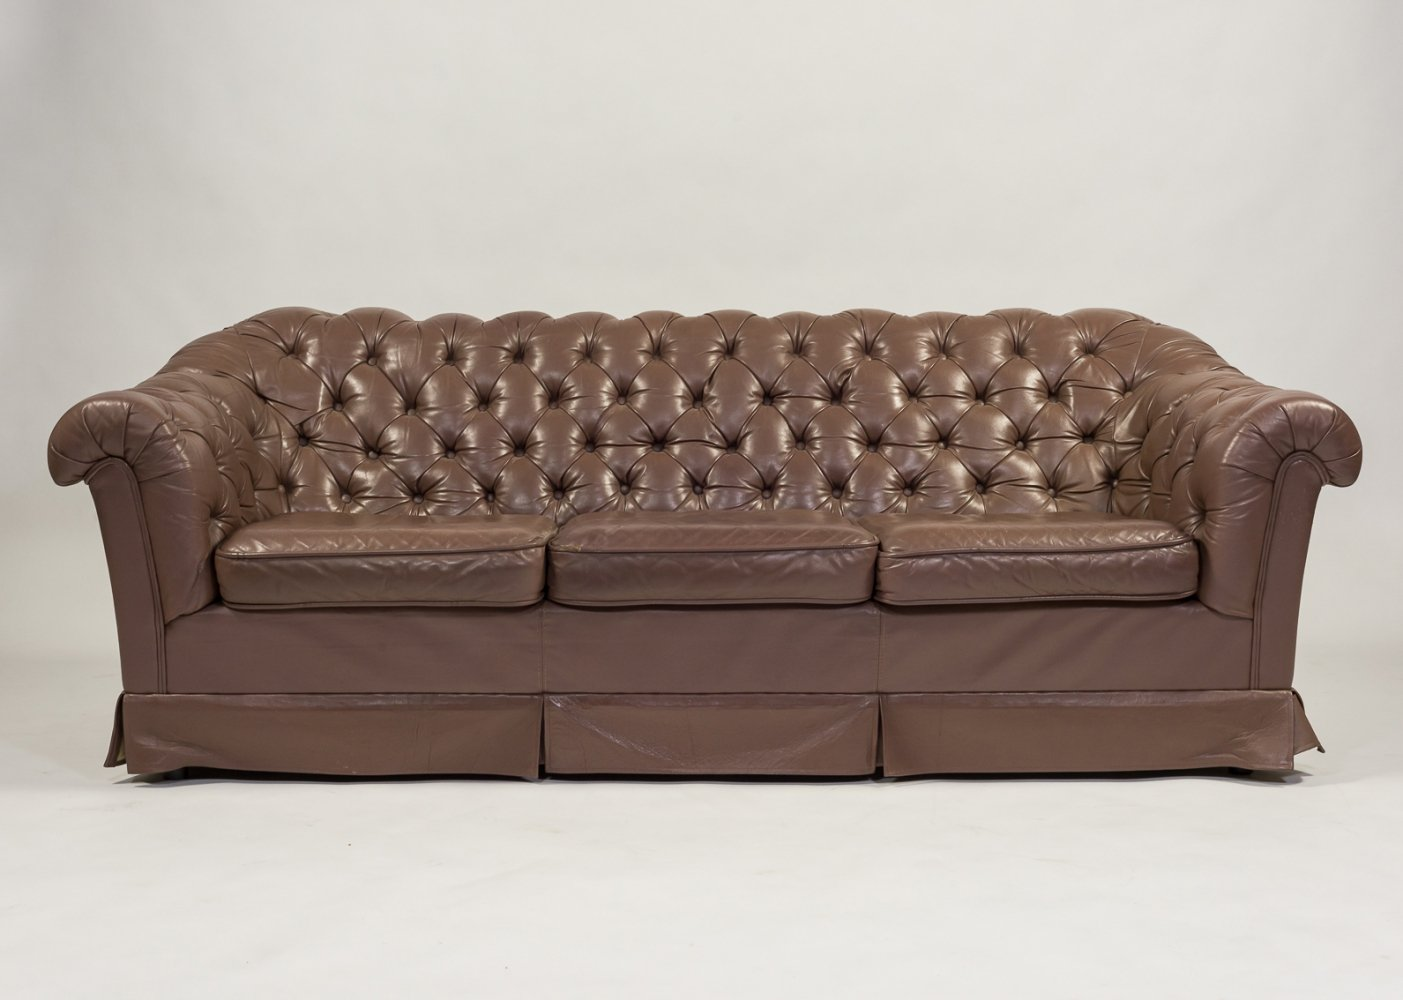 Chesterfield style three seater leather sofa